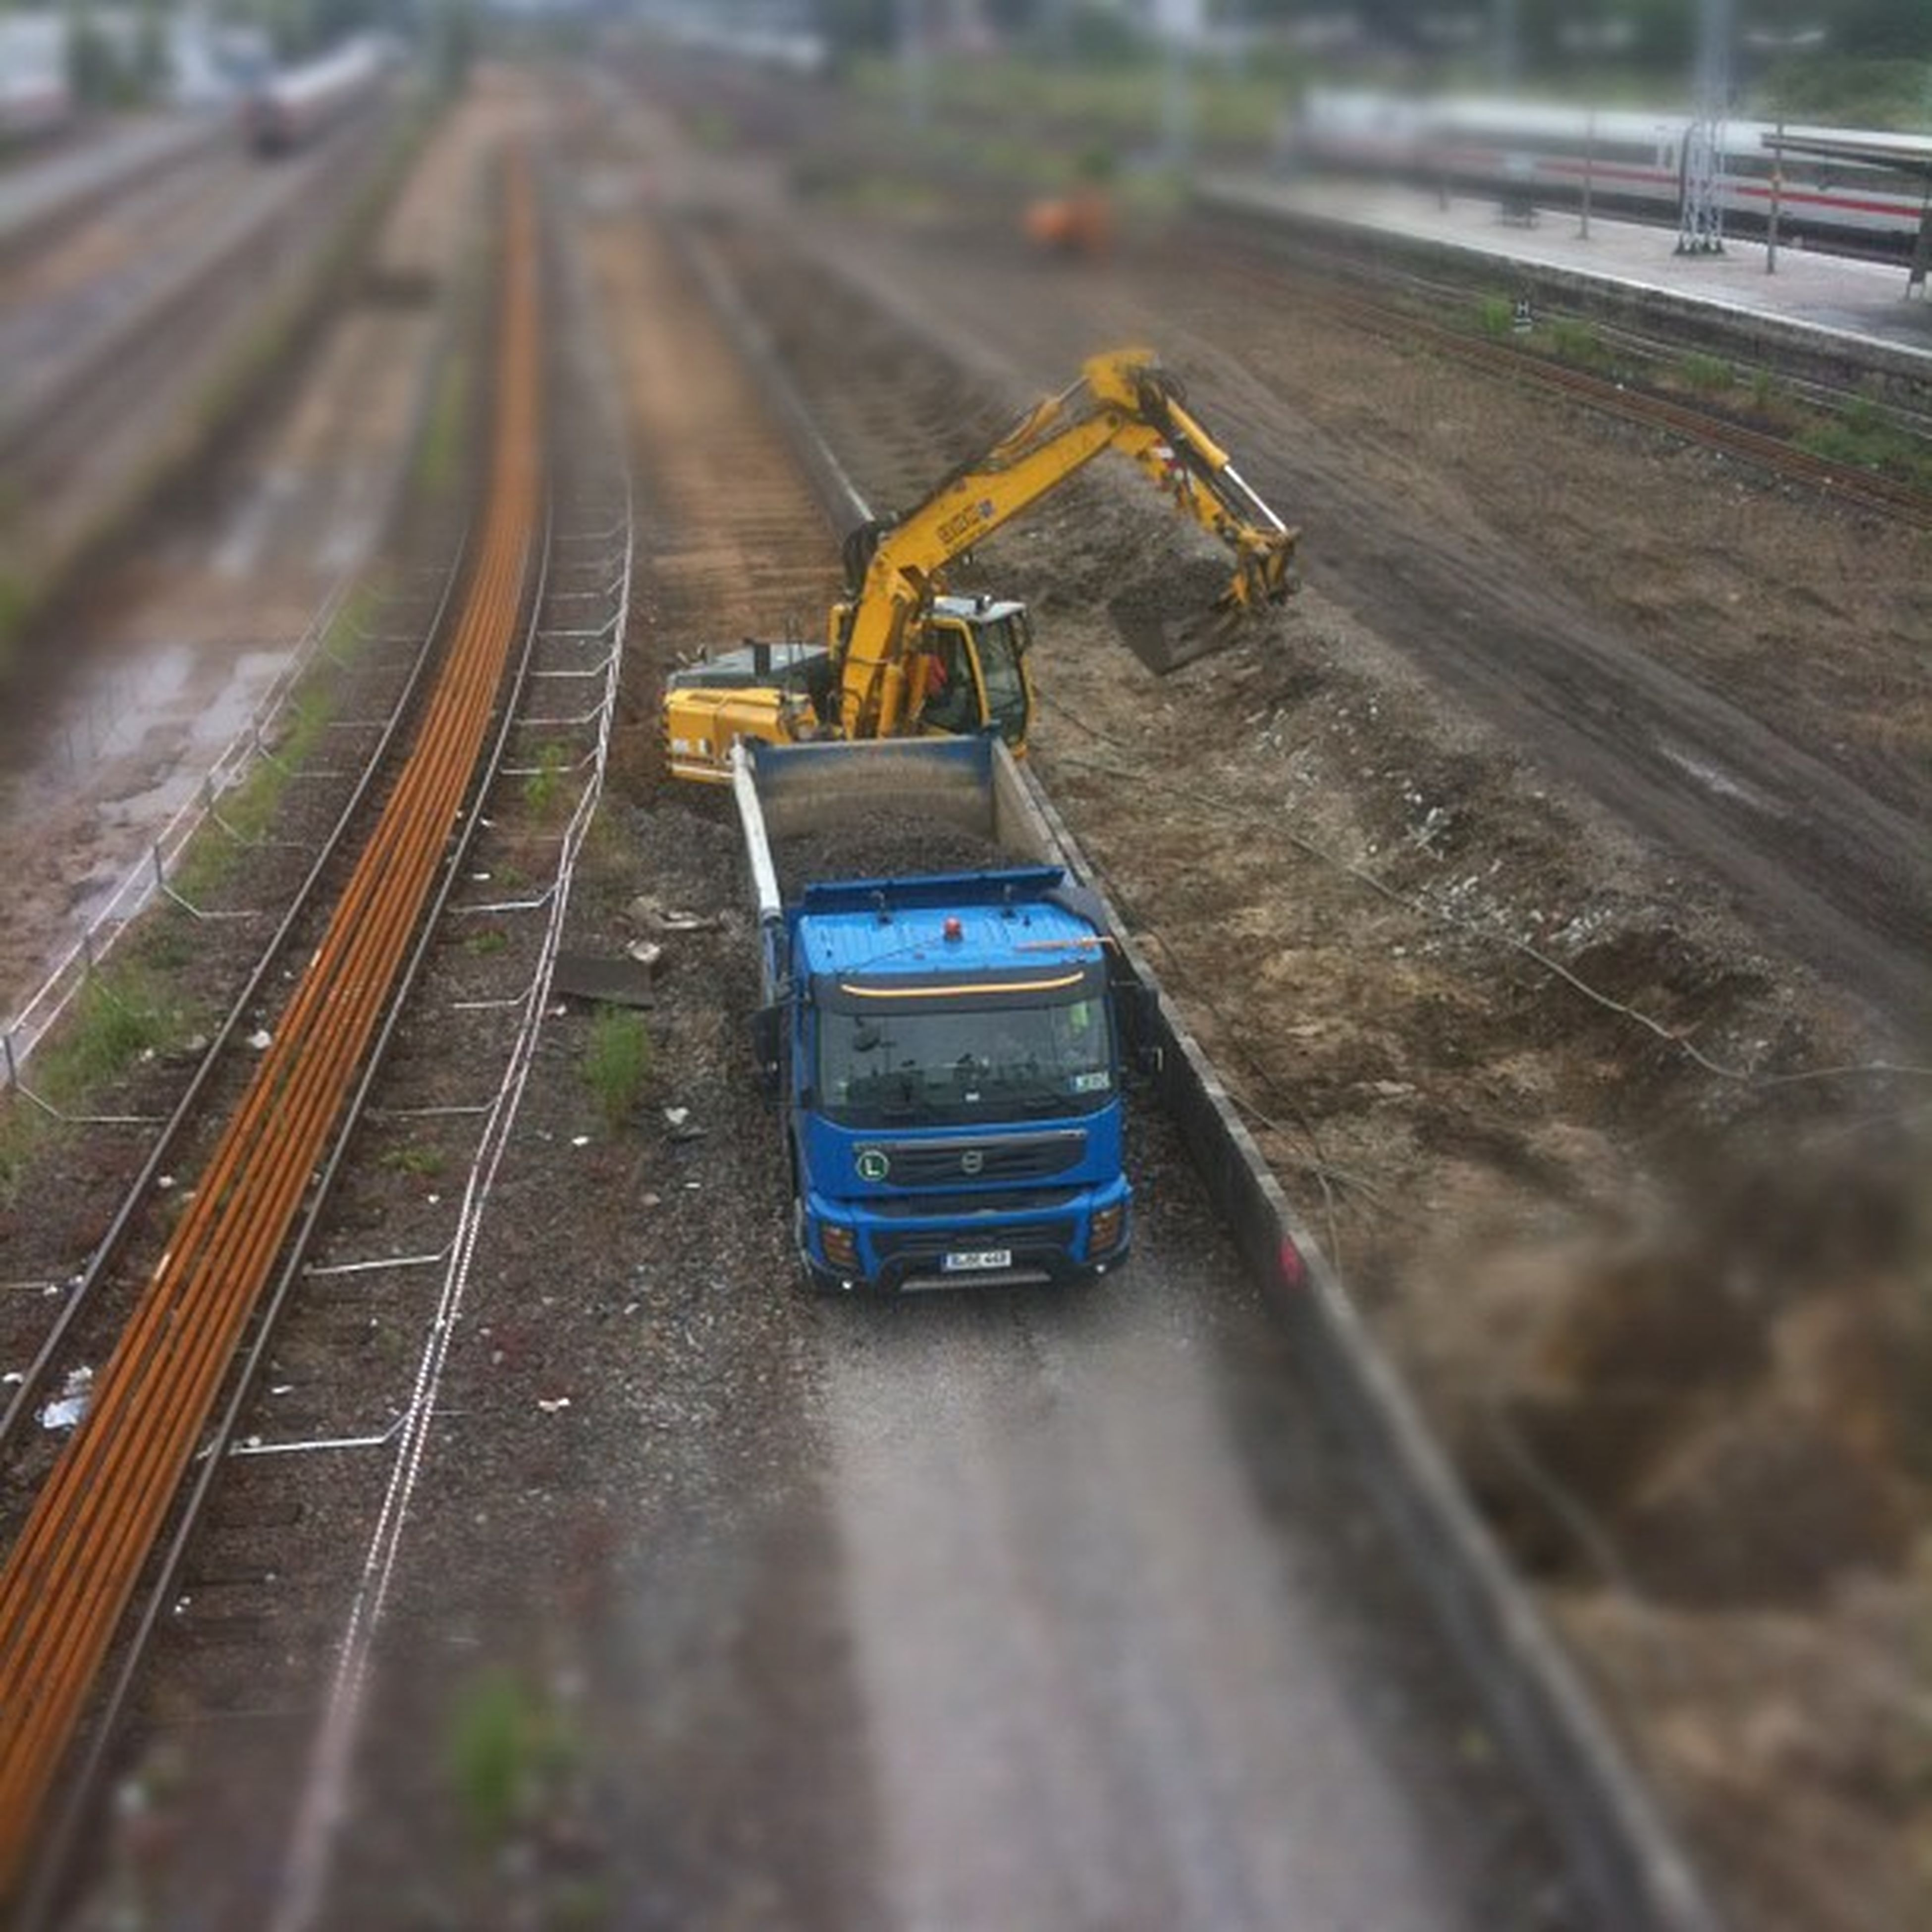 transportation, railroad track, the way forward, diminishing perspective, mode of transport, vanishing point, rail transportation, public transportation, travel, on the move, road, high angle view, land vehicle, road marking, motion, speed, journey, surface level, selective focus, railway track